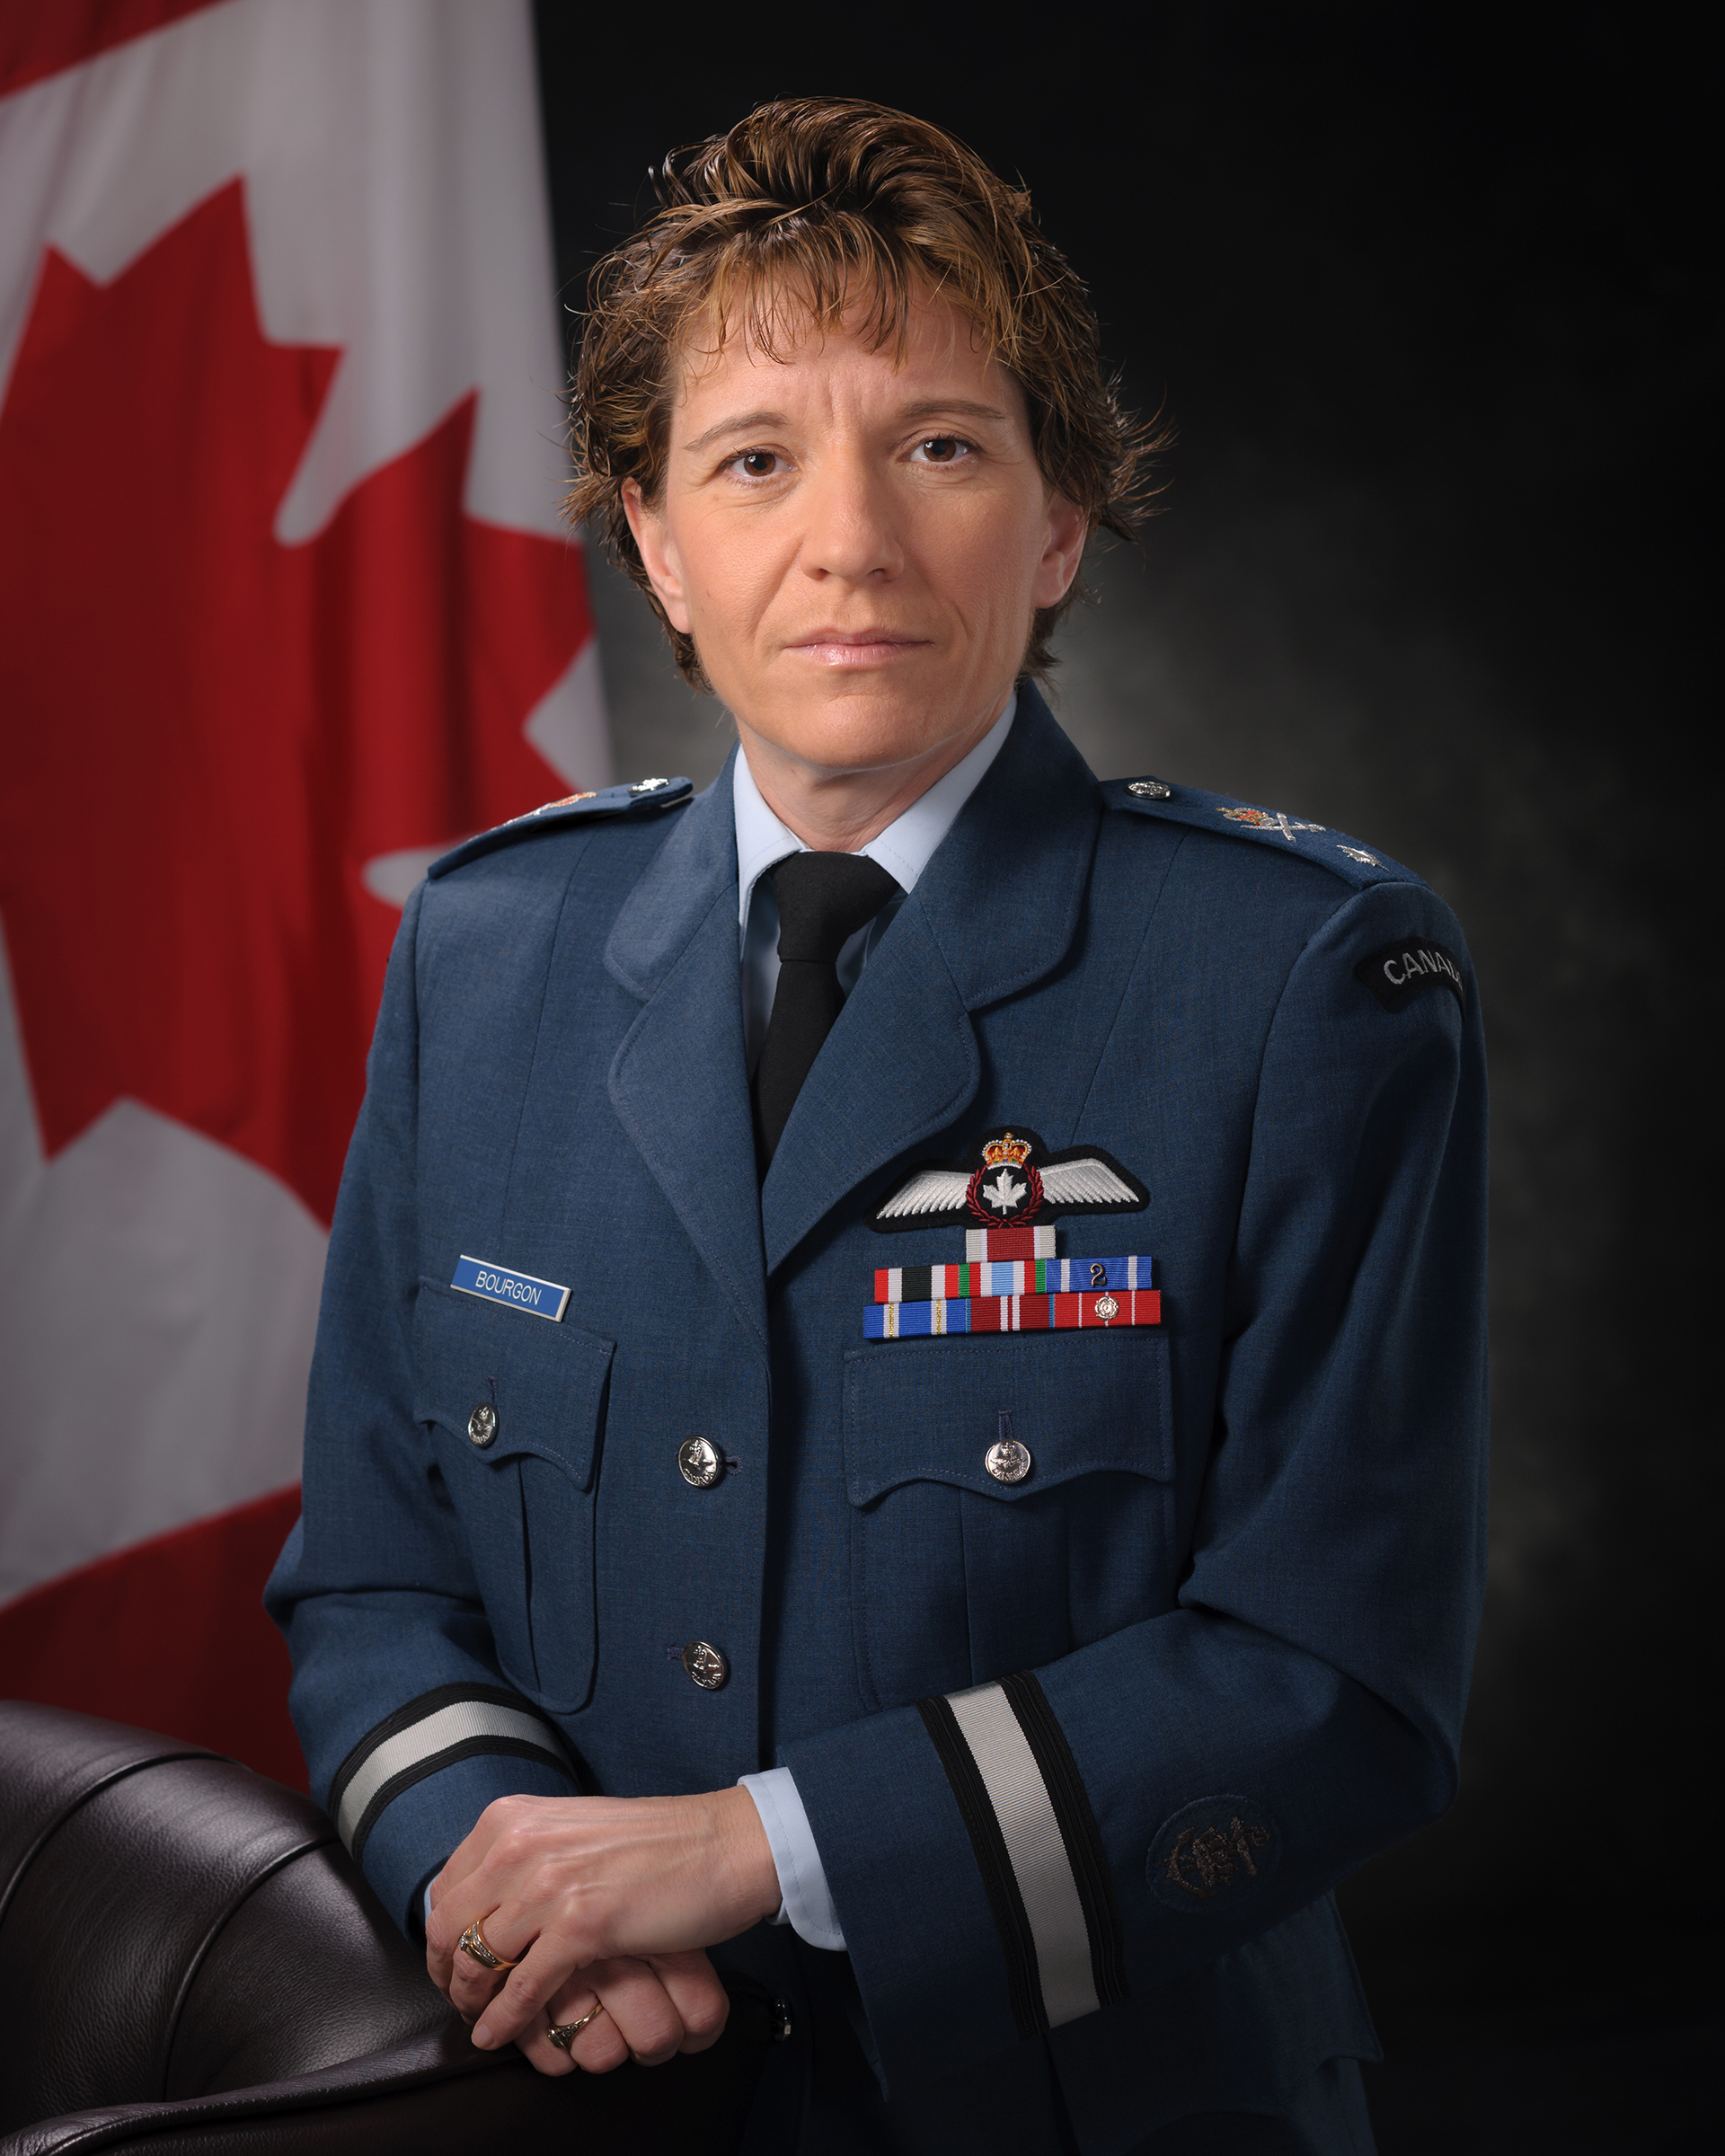 royal canadian air force news article women in aviation brigadier general lise bourgon. Black Bedroom Furniture Sets. Home Design Ideas